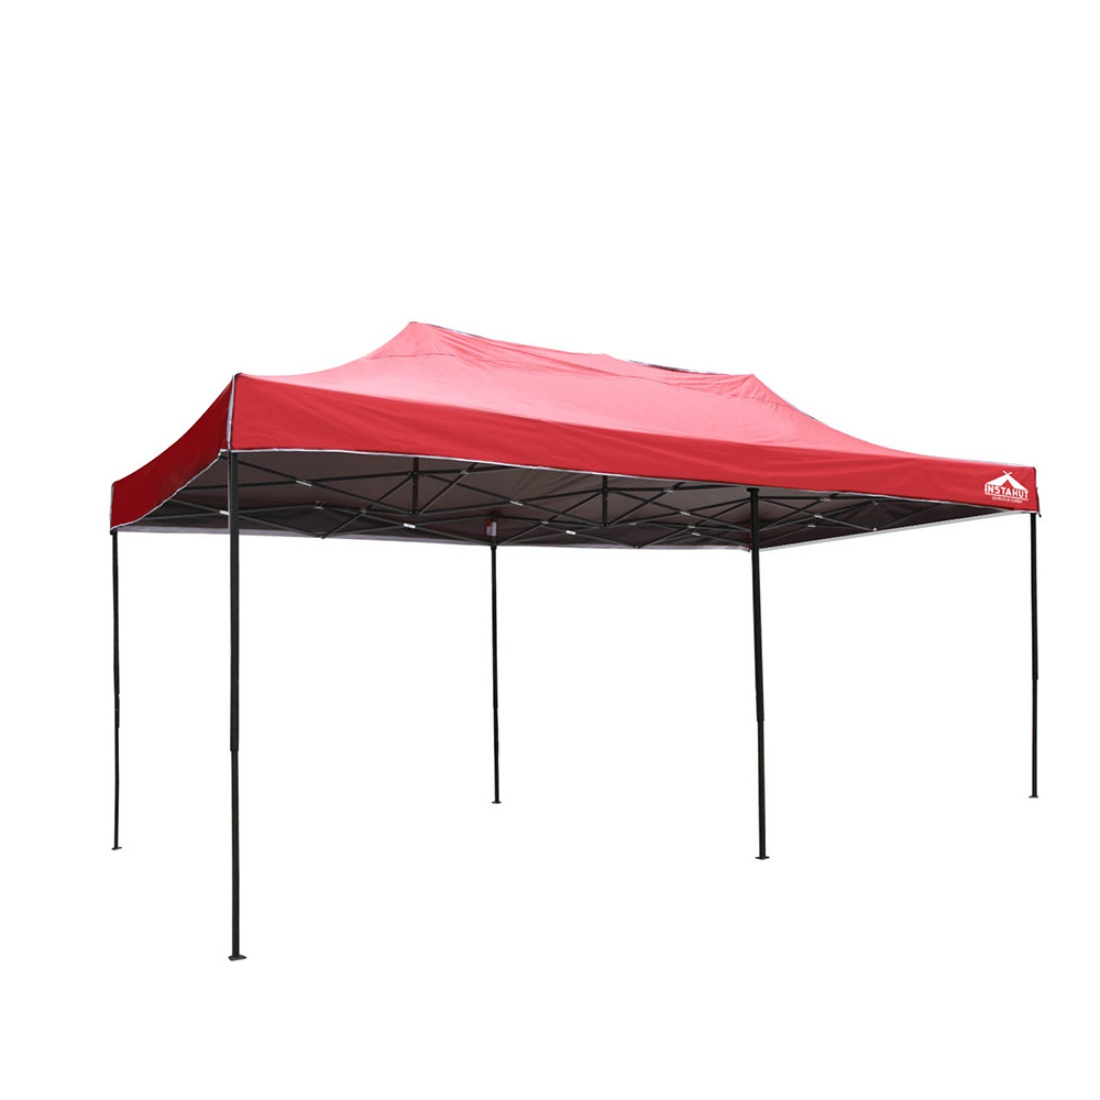 3m x 6m Pop-up Garden Outdoor Gazebo Red